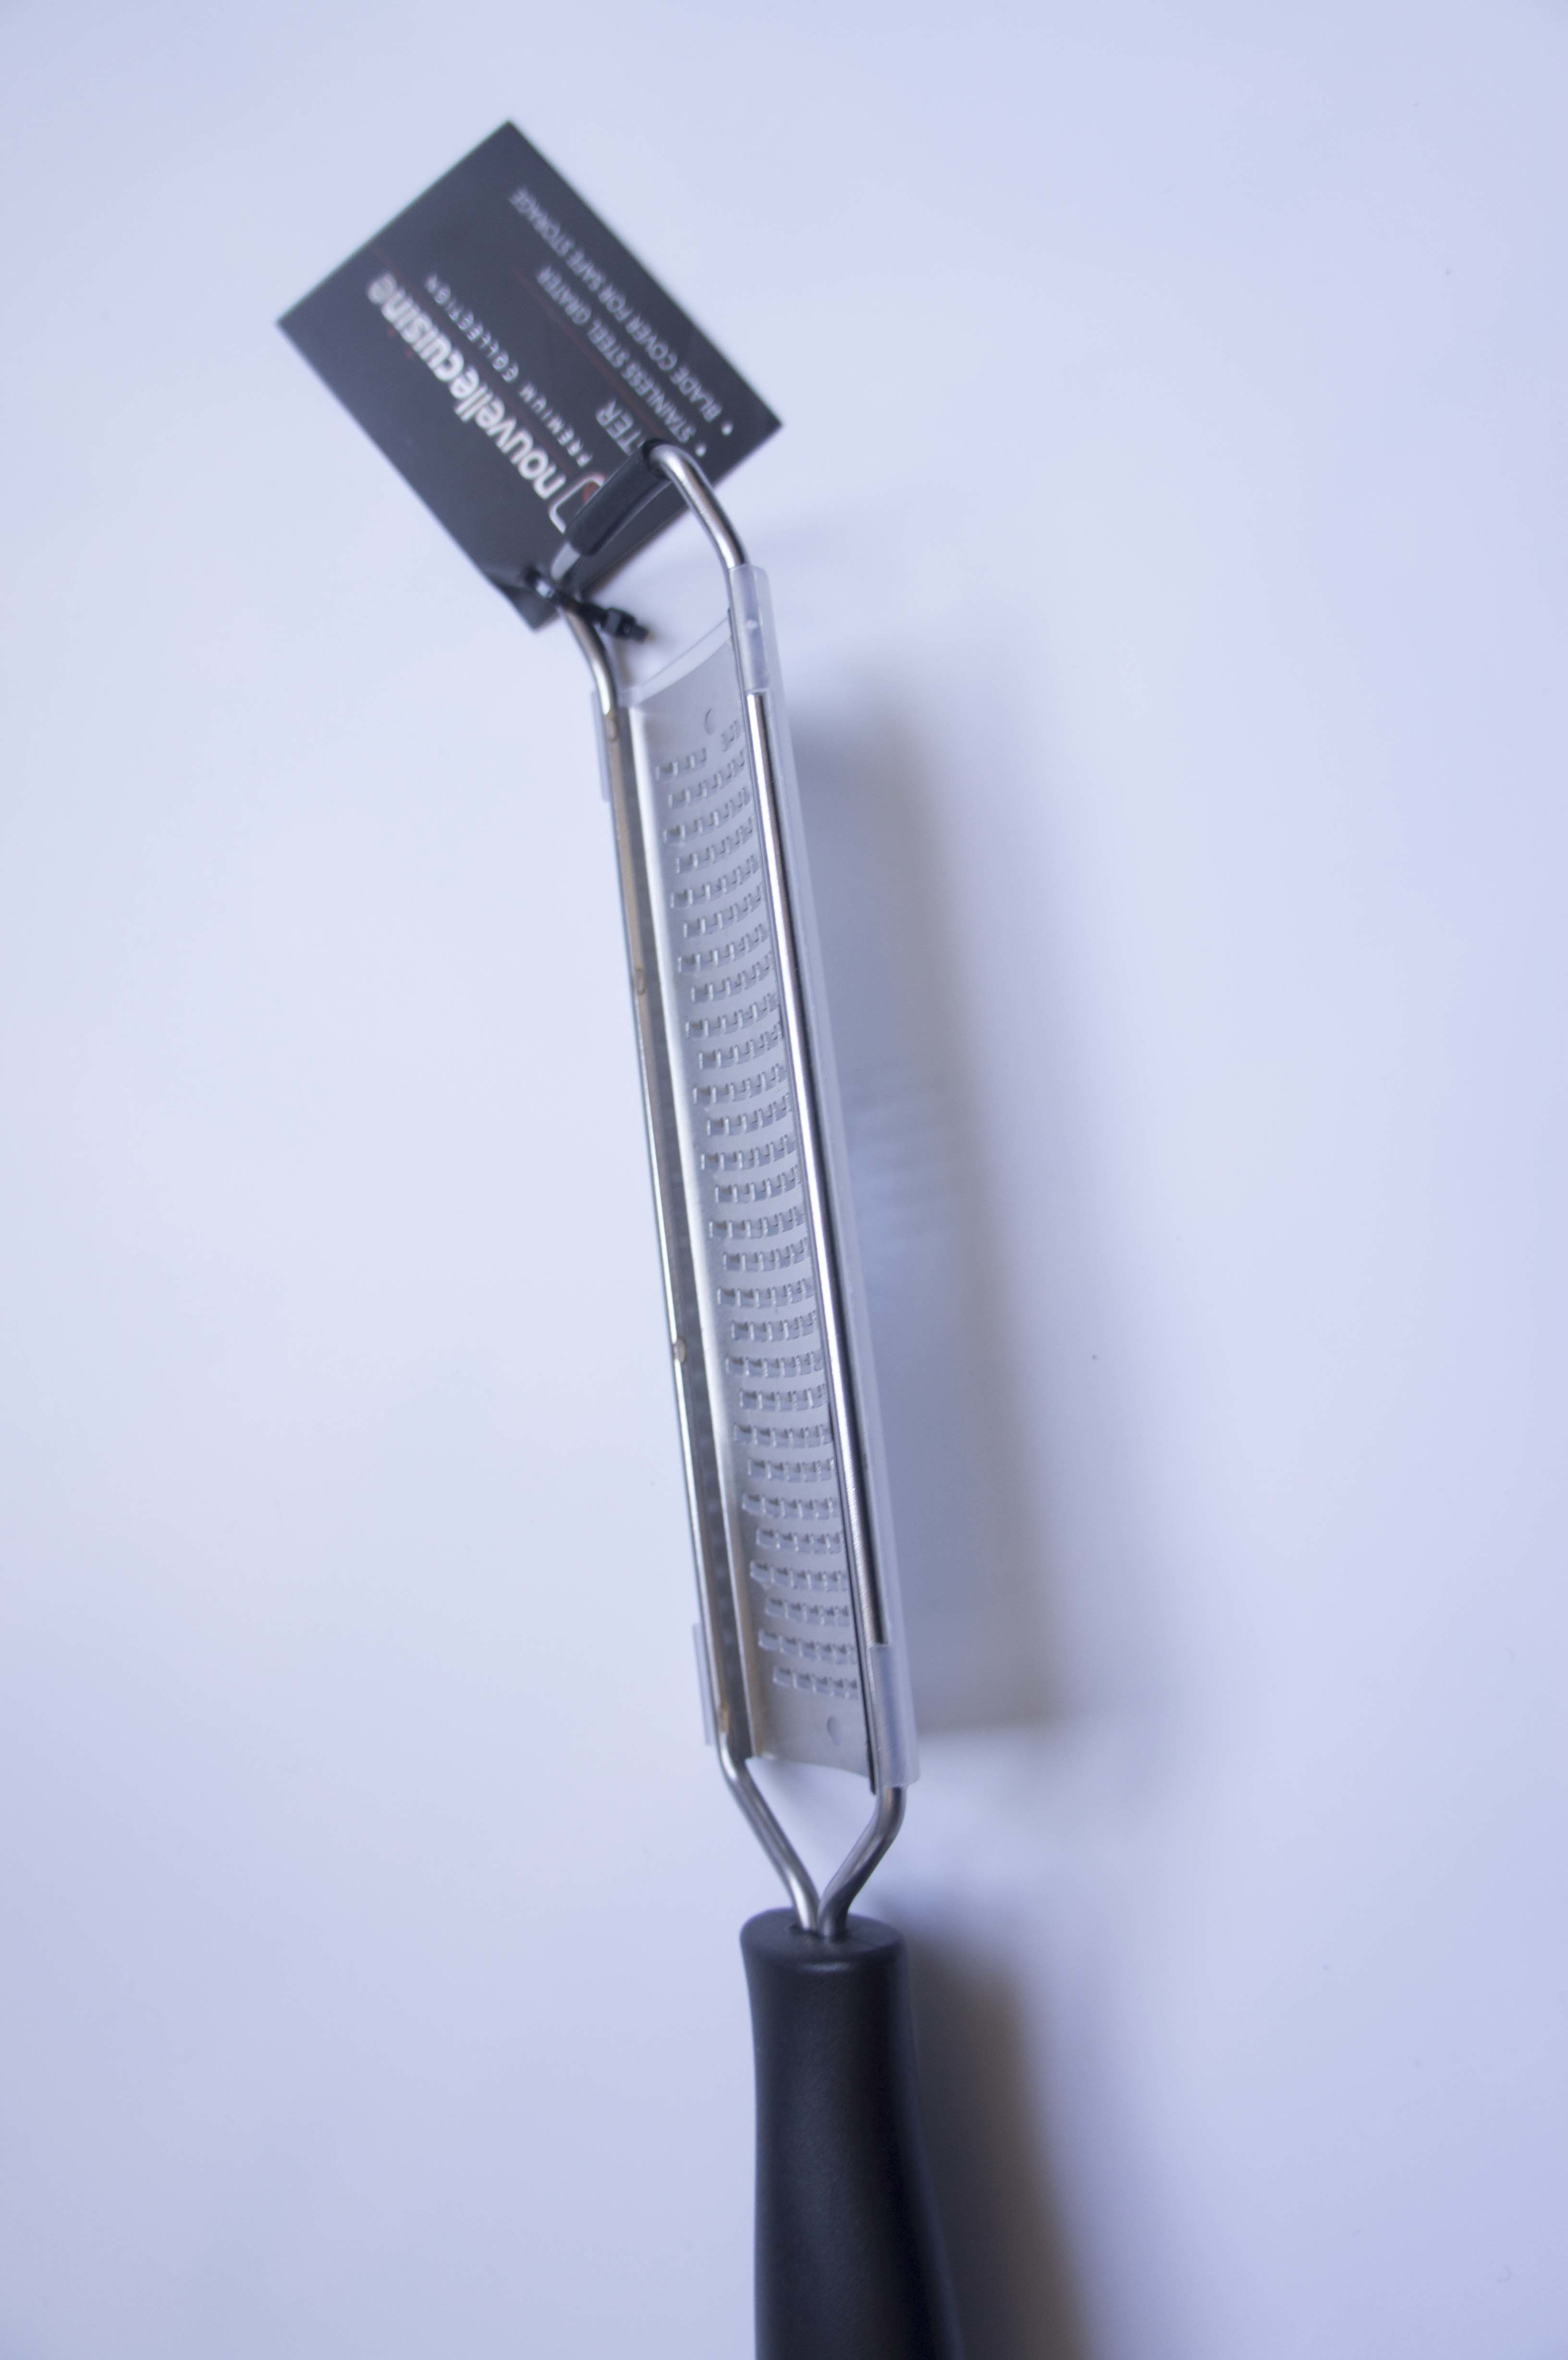 Citrus Lemon Zester & Cheese Grater Stainless Steel, Non-Slip Footing and Very Sharp